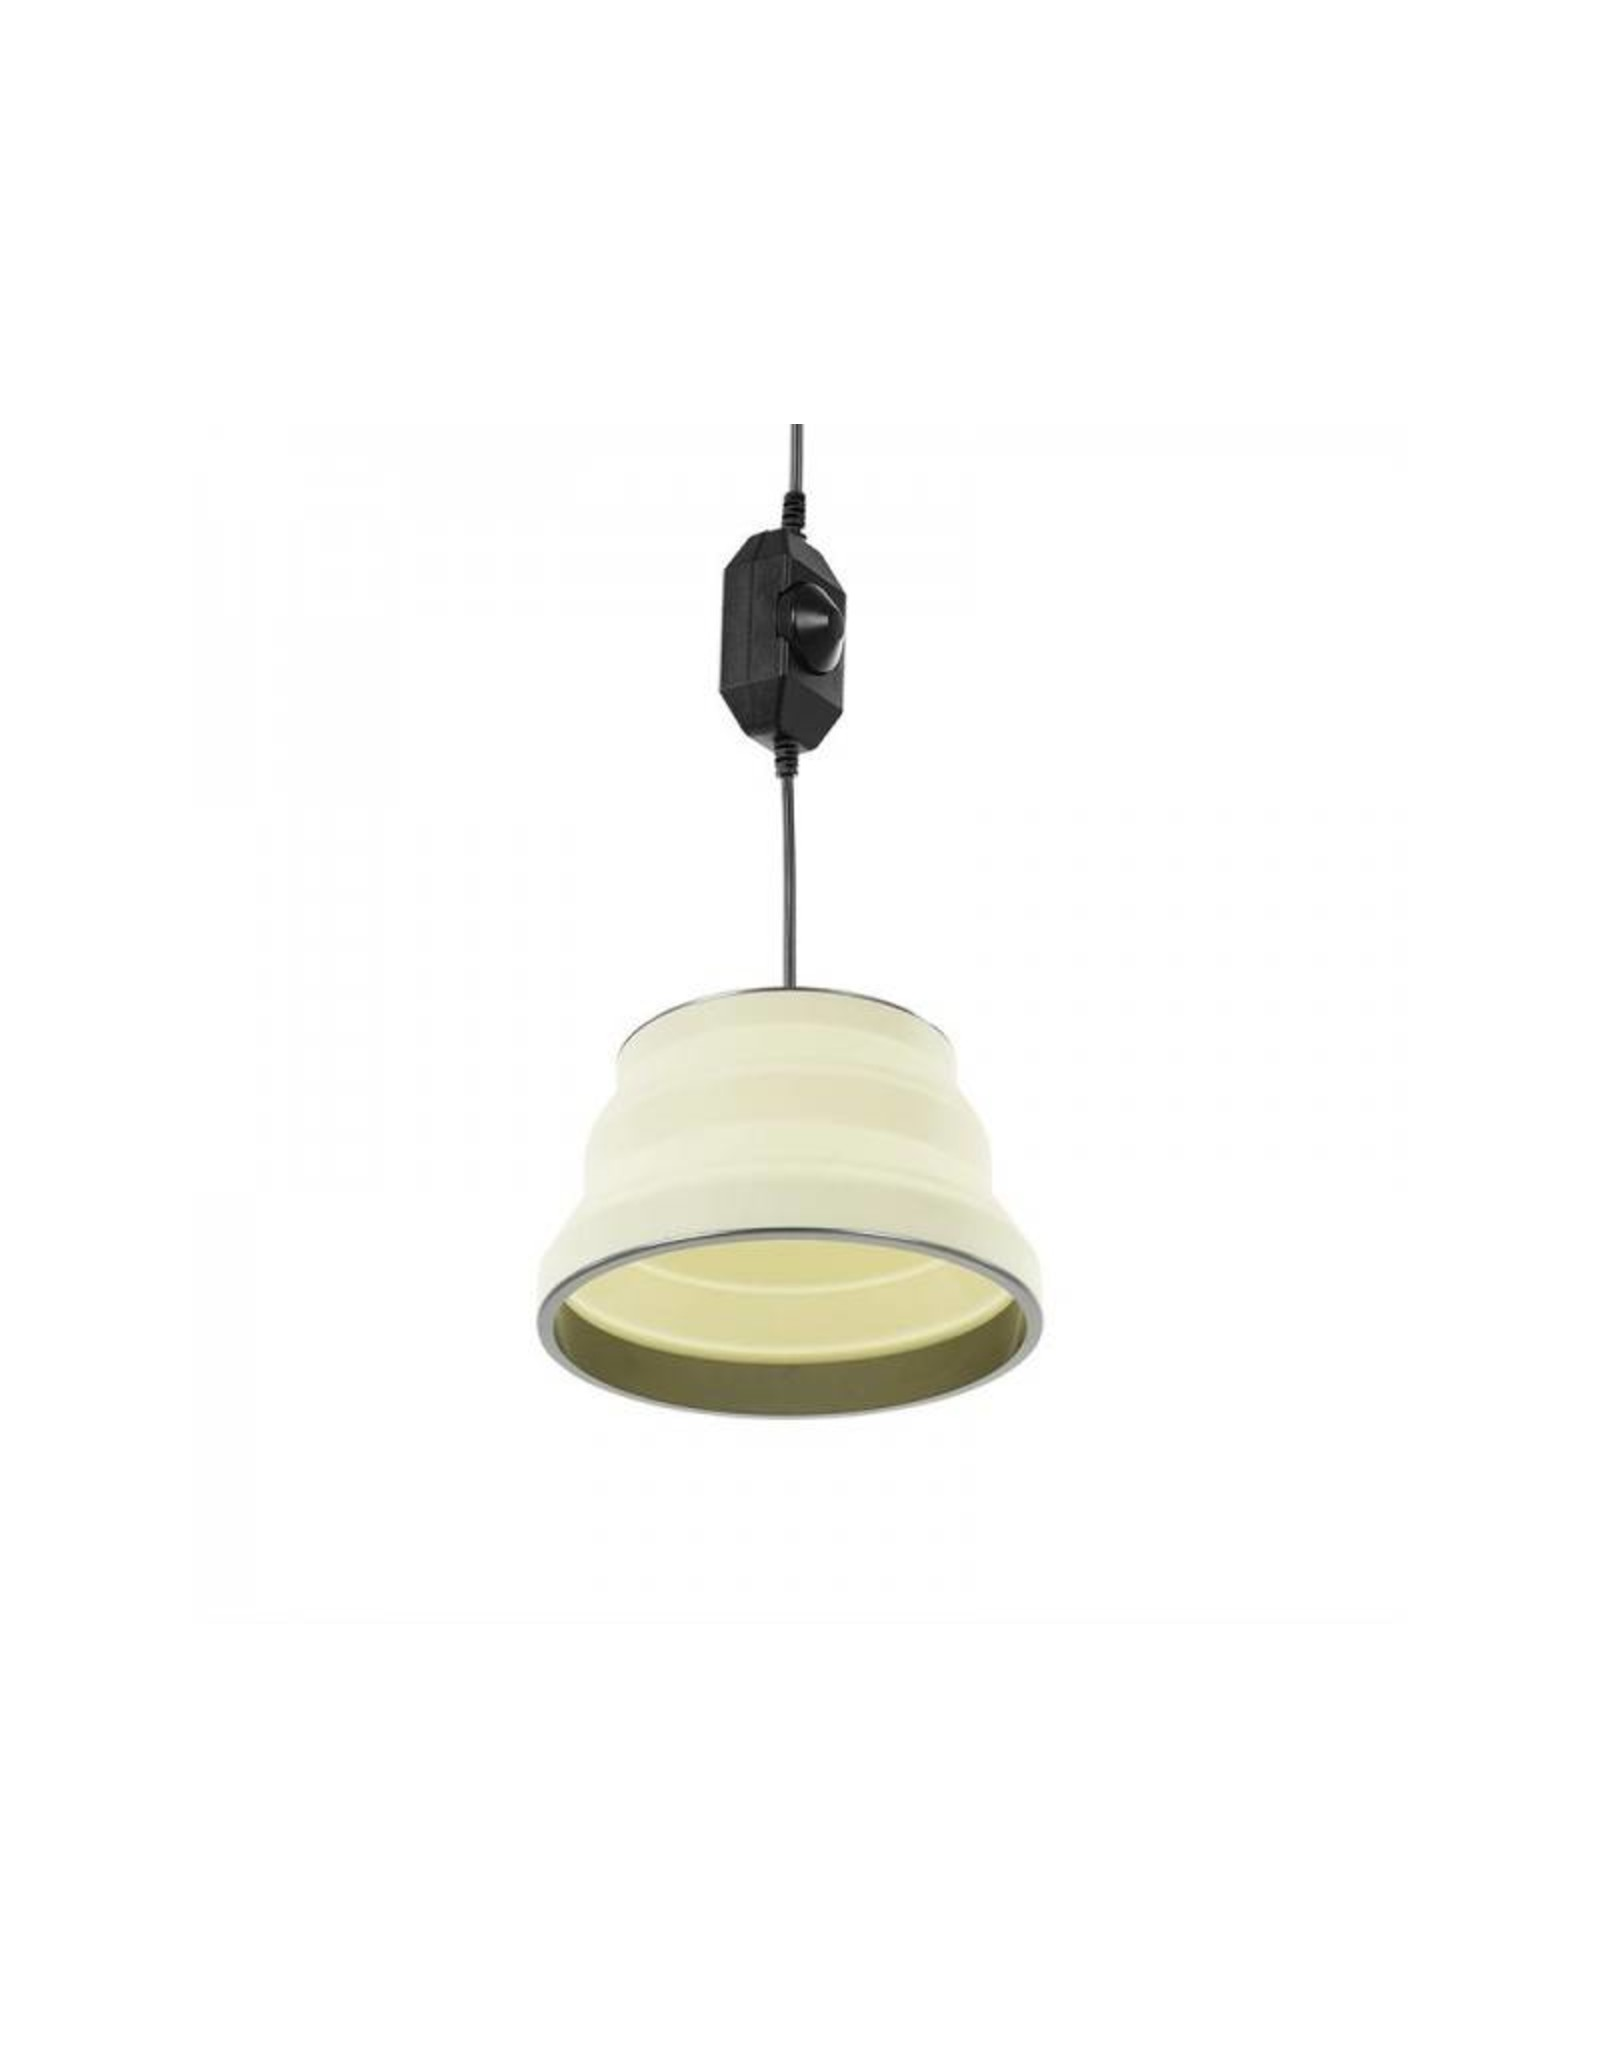 Hanglamp LED opvouwbaar silicone wit ?20cm